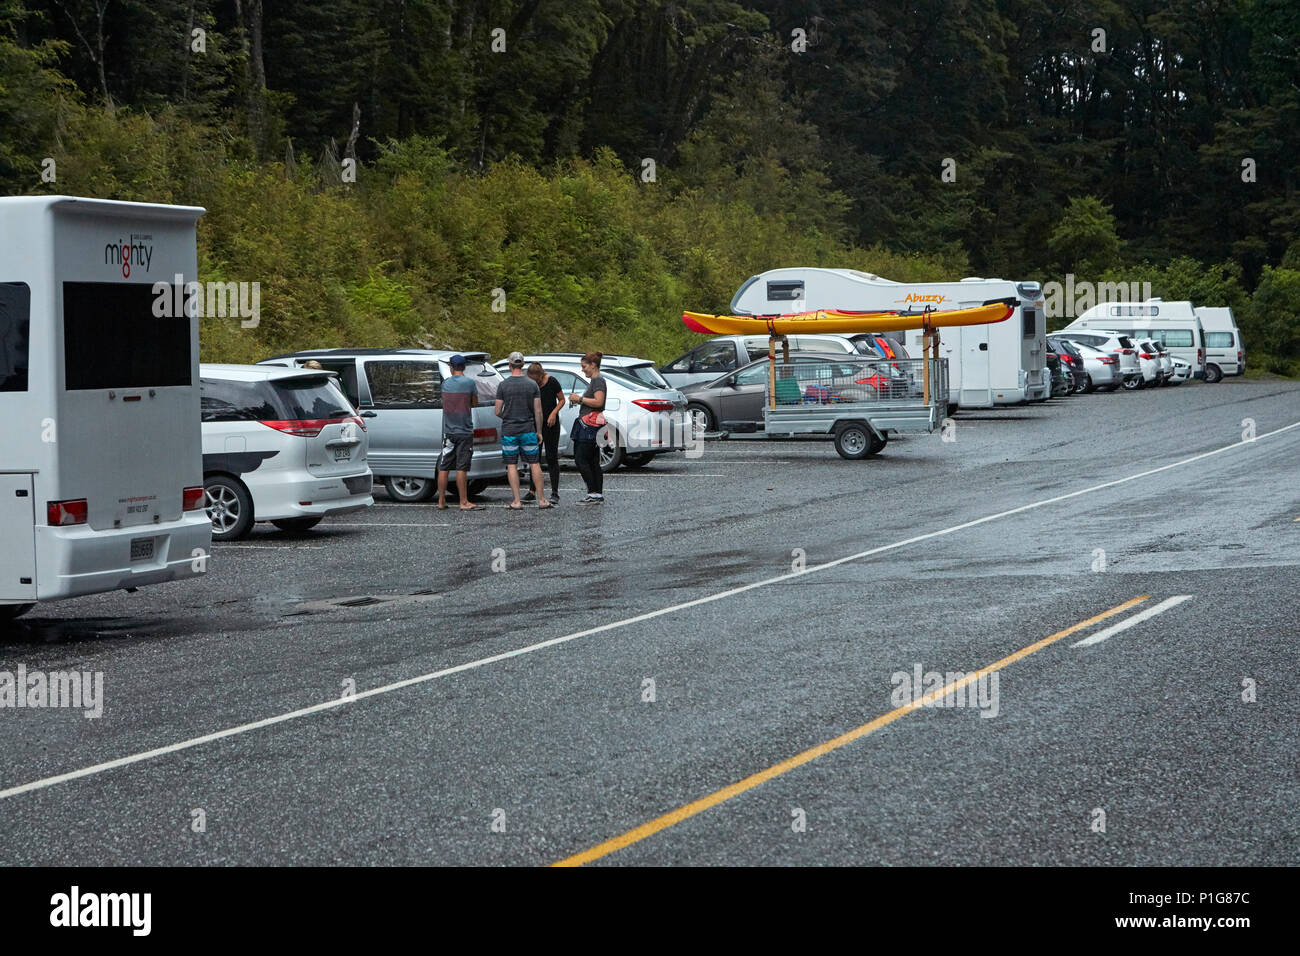 Crowded car park for Blue Pools, Mount Aspiring National Park, Haast Pass, near Makarora, Otago, South Island, New Zealand - Stock Image